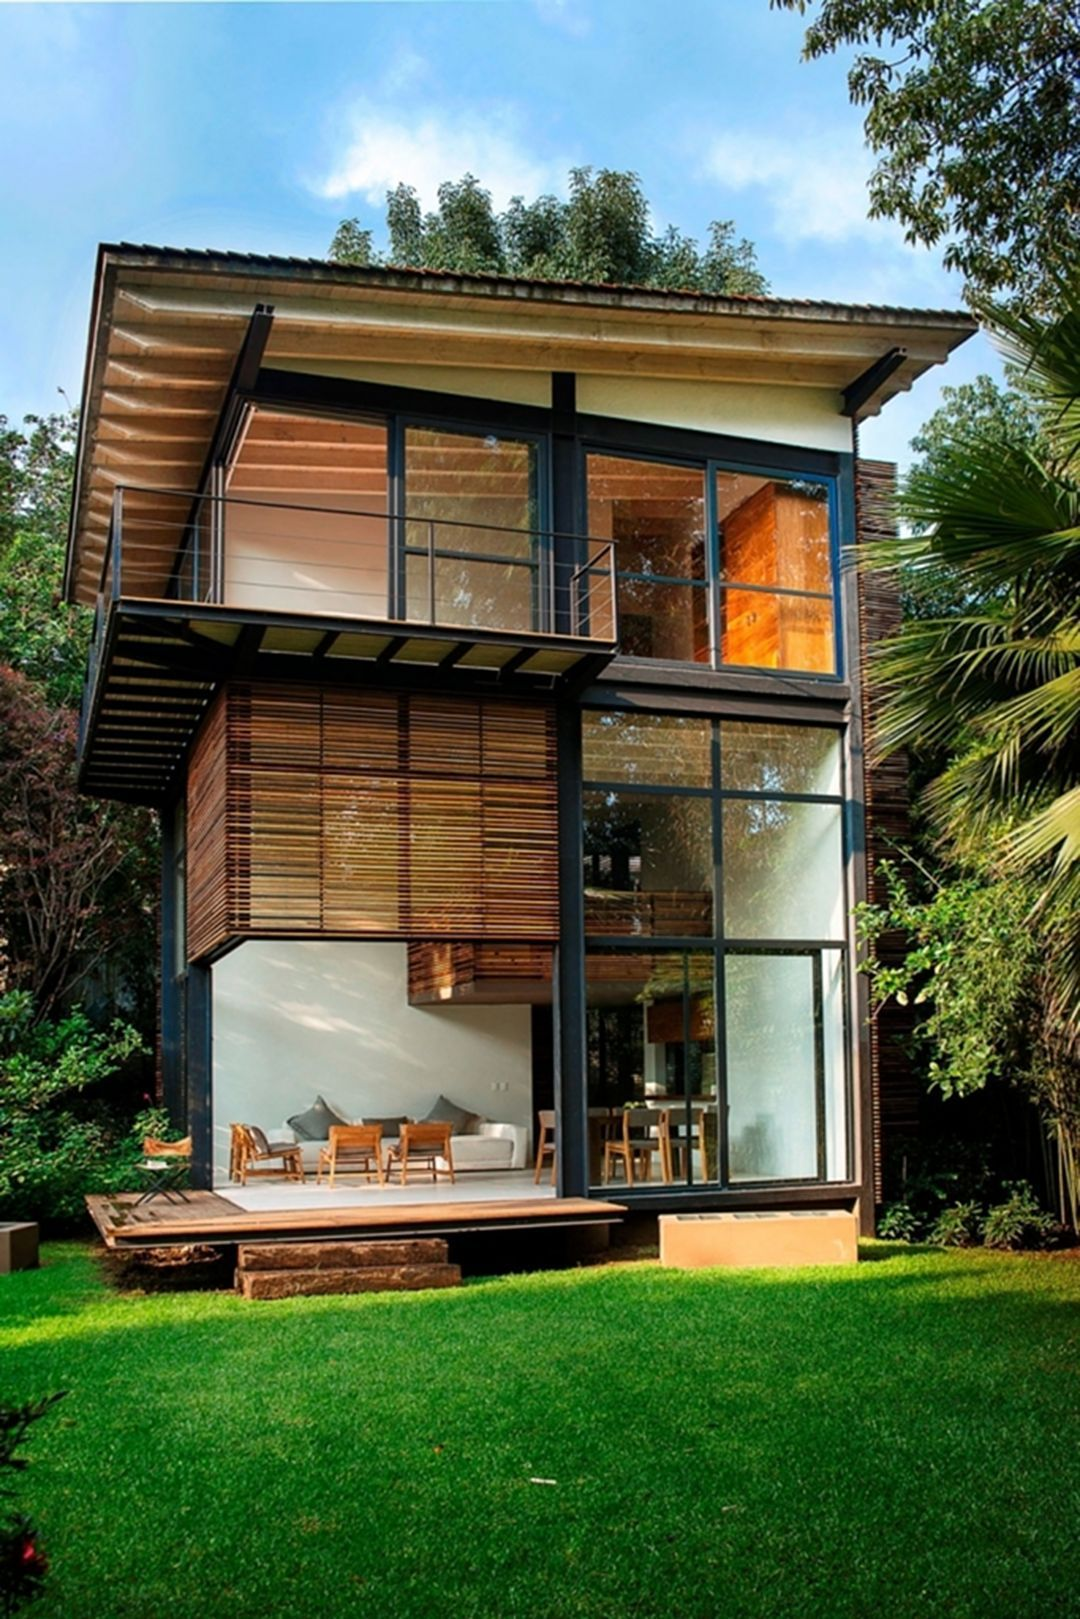 20 Best Of Minimalist House Designs Simple Unique And Modern Wooden House Design Modern Small House Design Small House Design Architecture